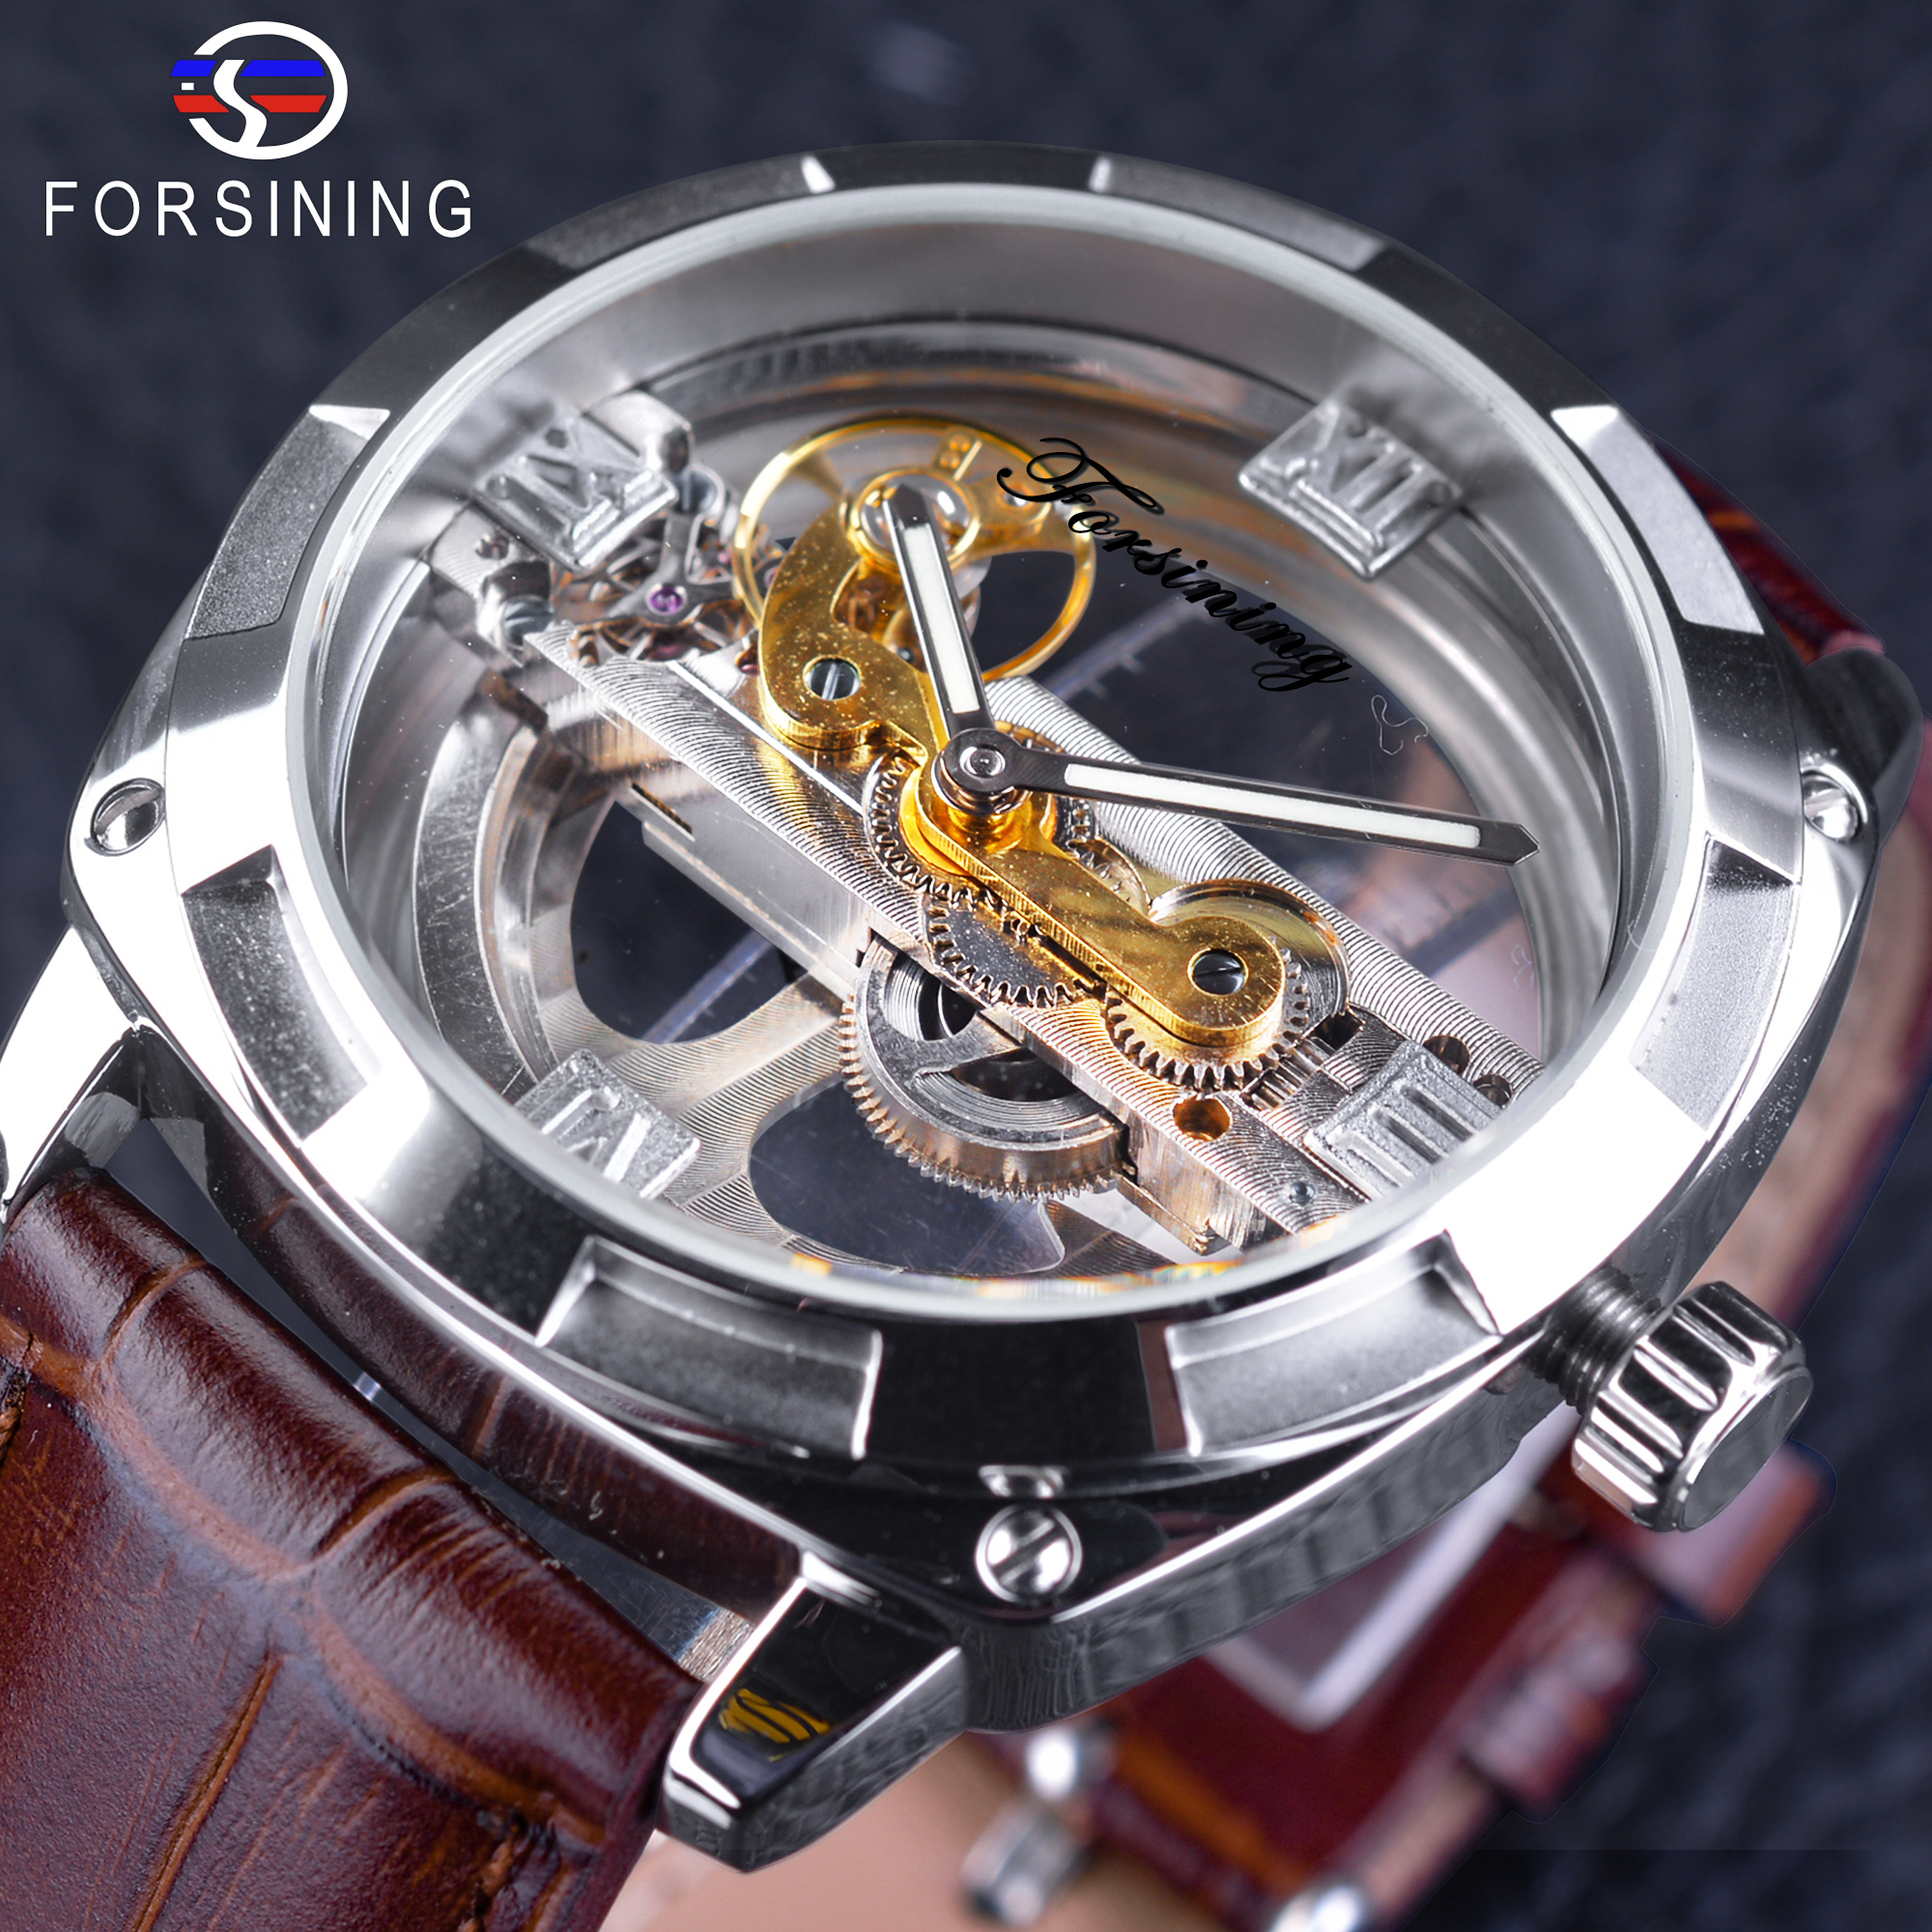 Forsining Men's Watch Skeleton Silver Transparent-Design Only-Official-Limited Fashion title=